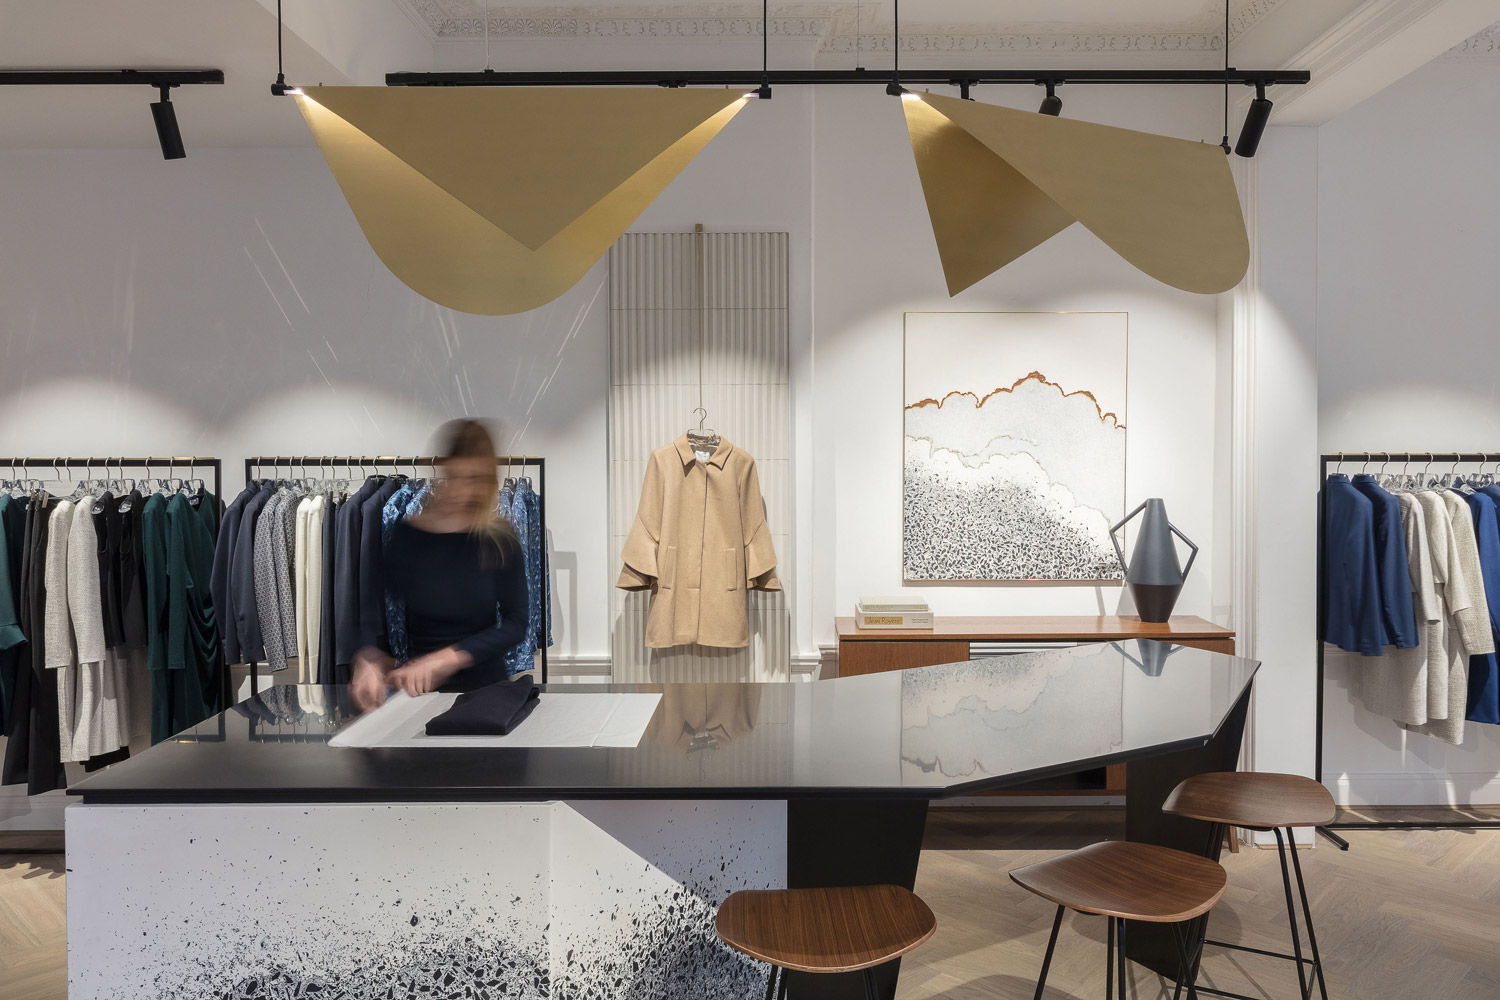 Multi-functional Retail Design for The Fold's First Flagship Store